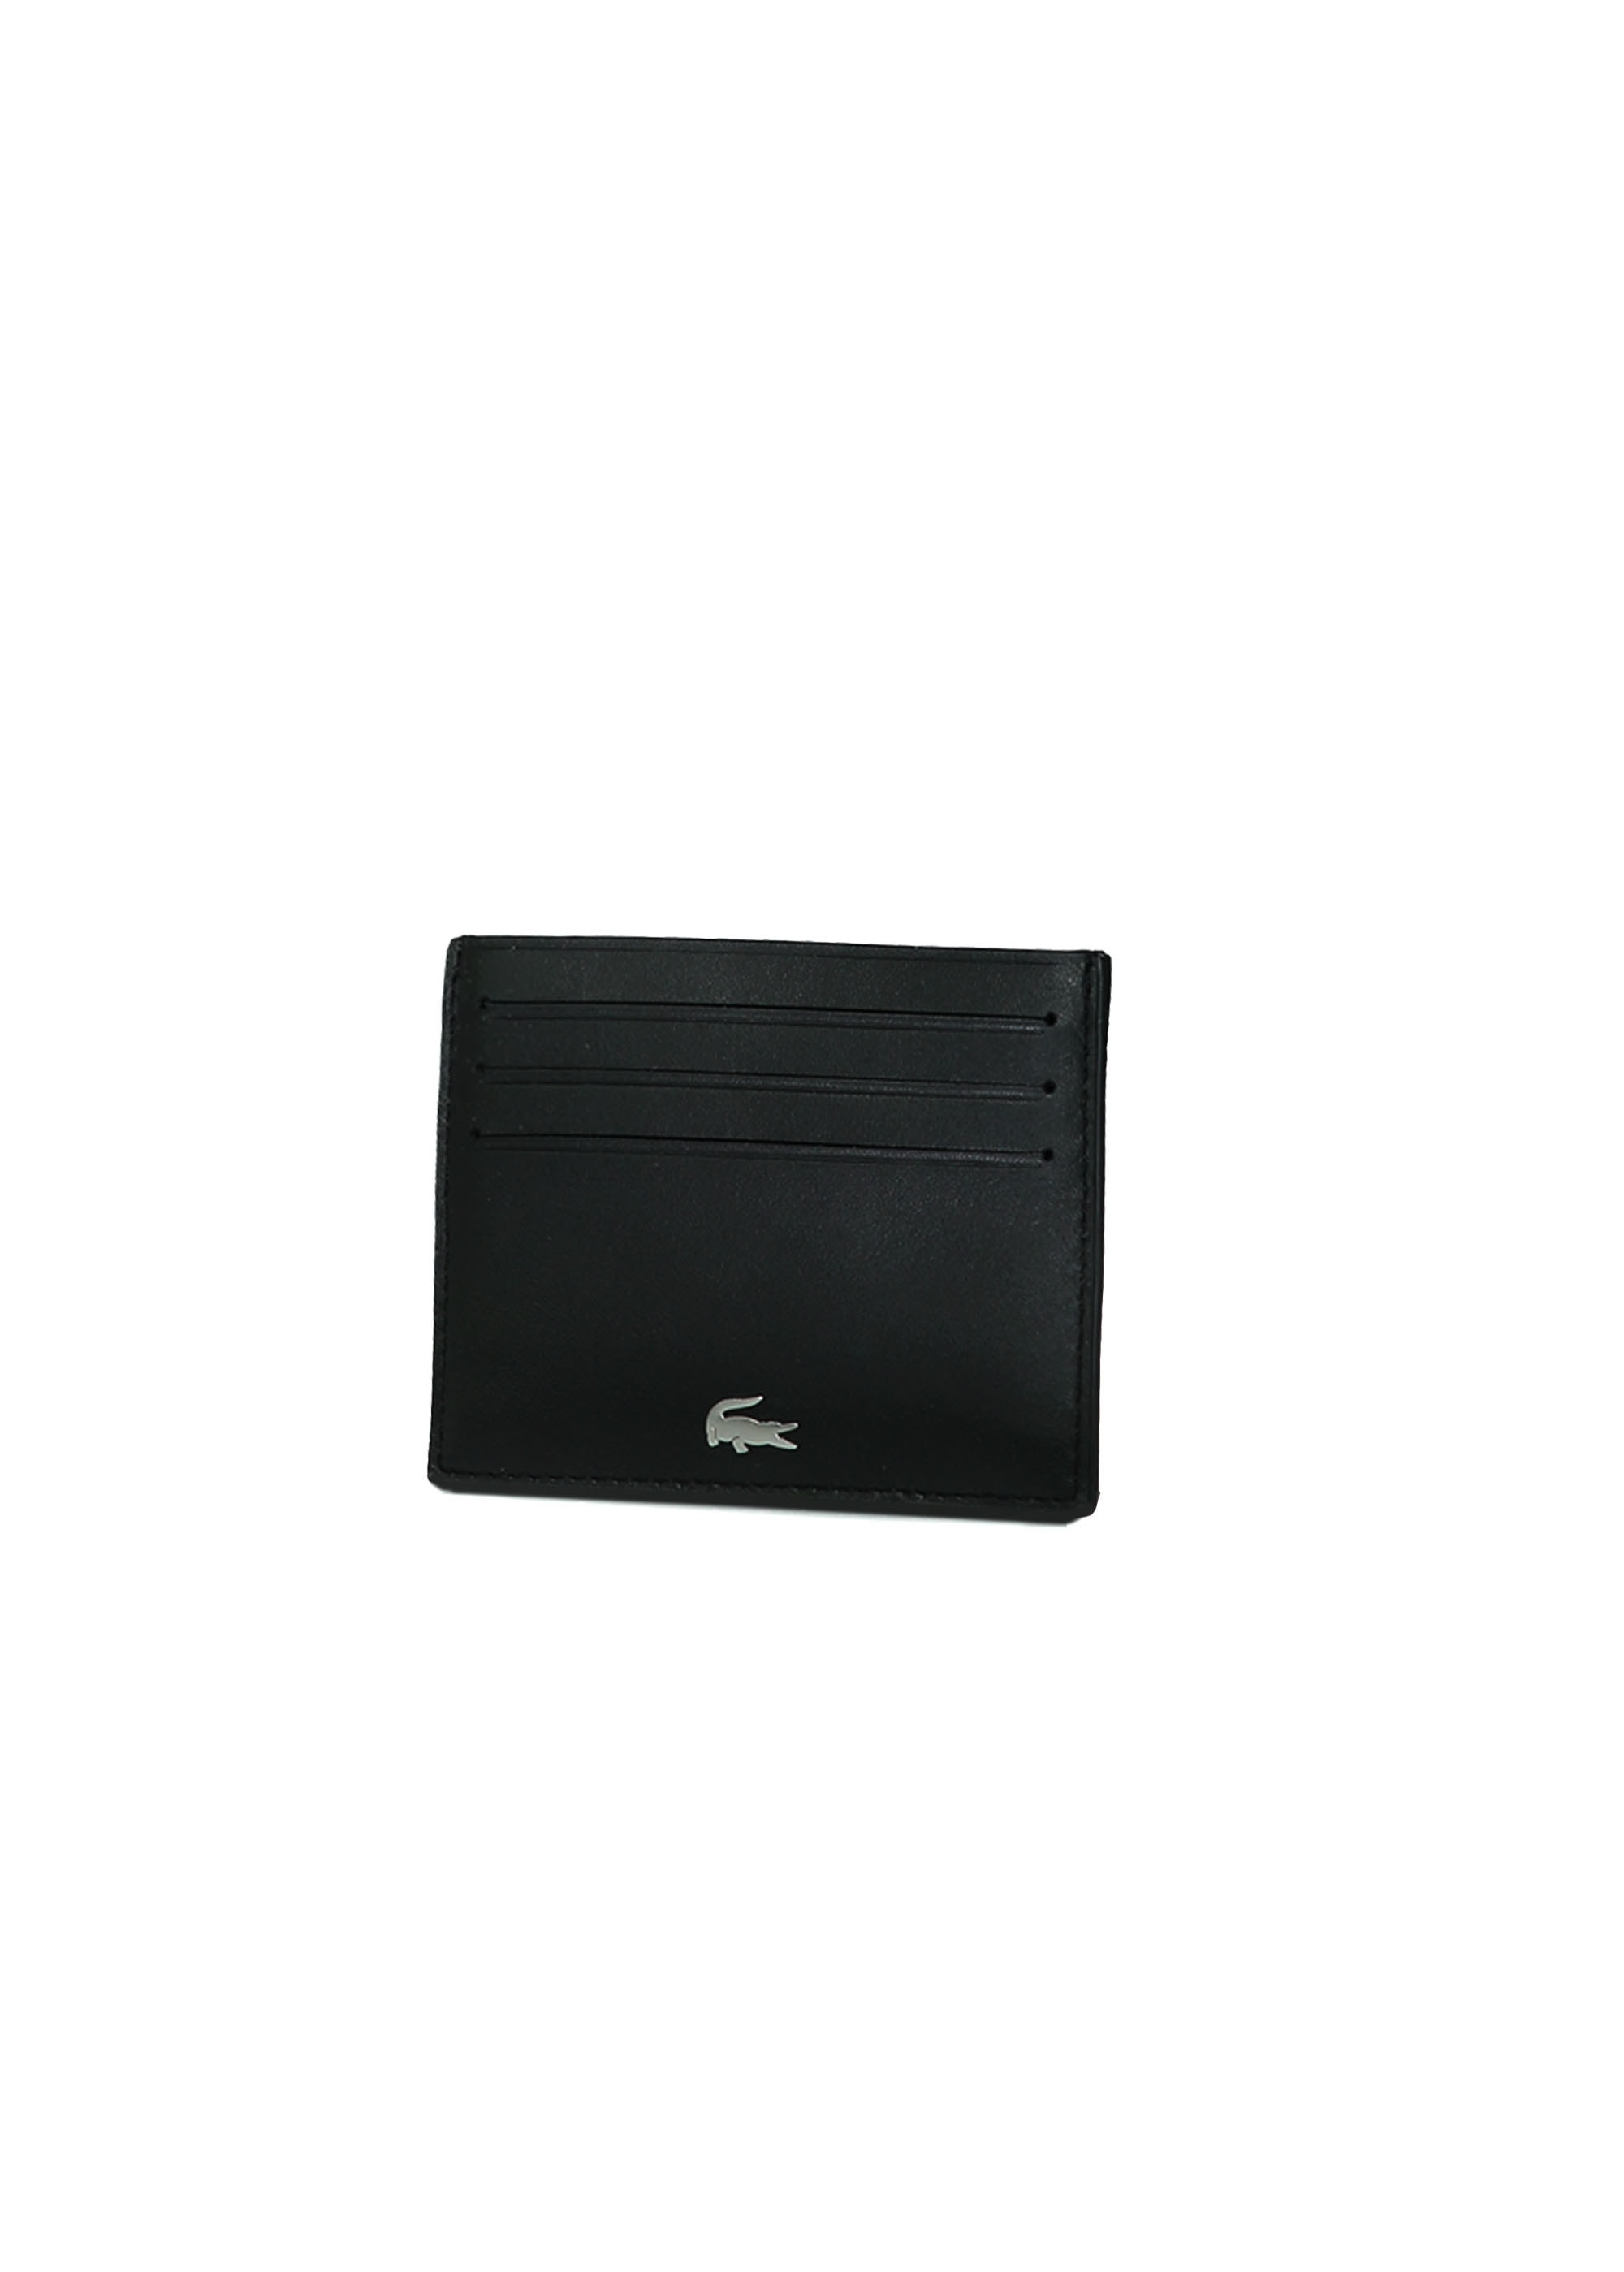 c9056deecb Lacoste Billfold Coin Box - Black - Wallets from Triads UK